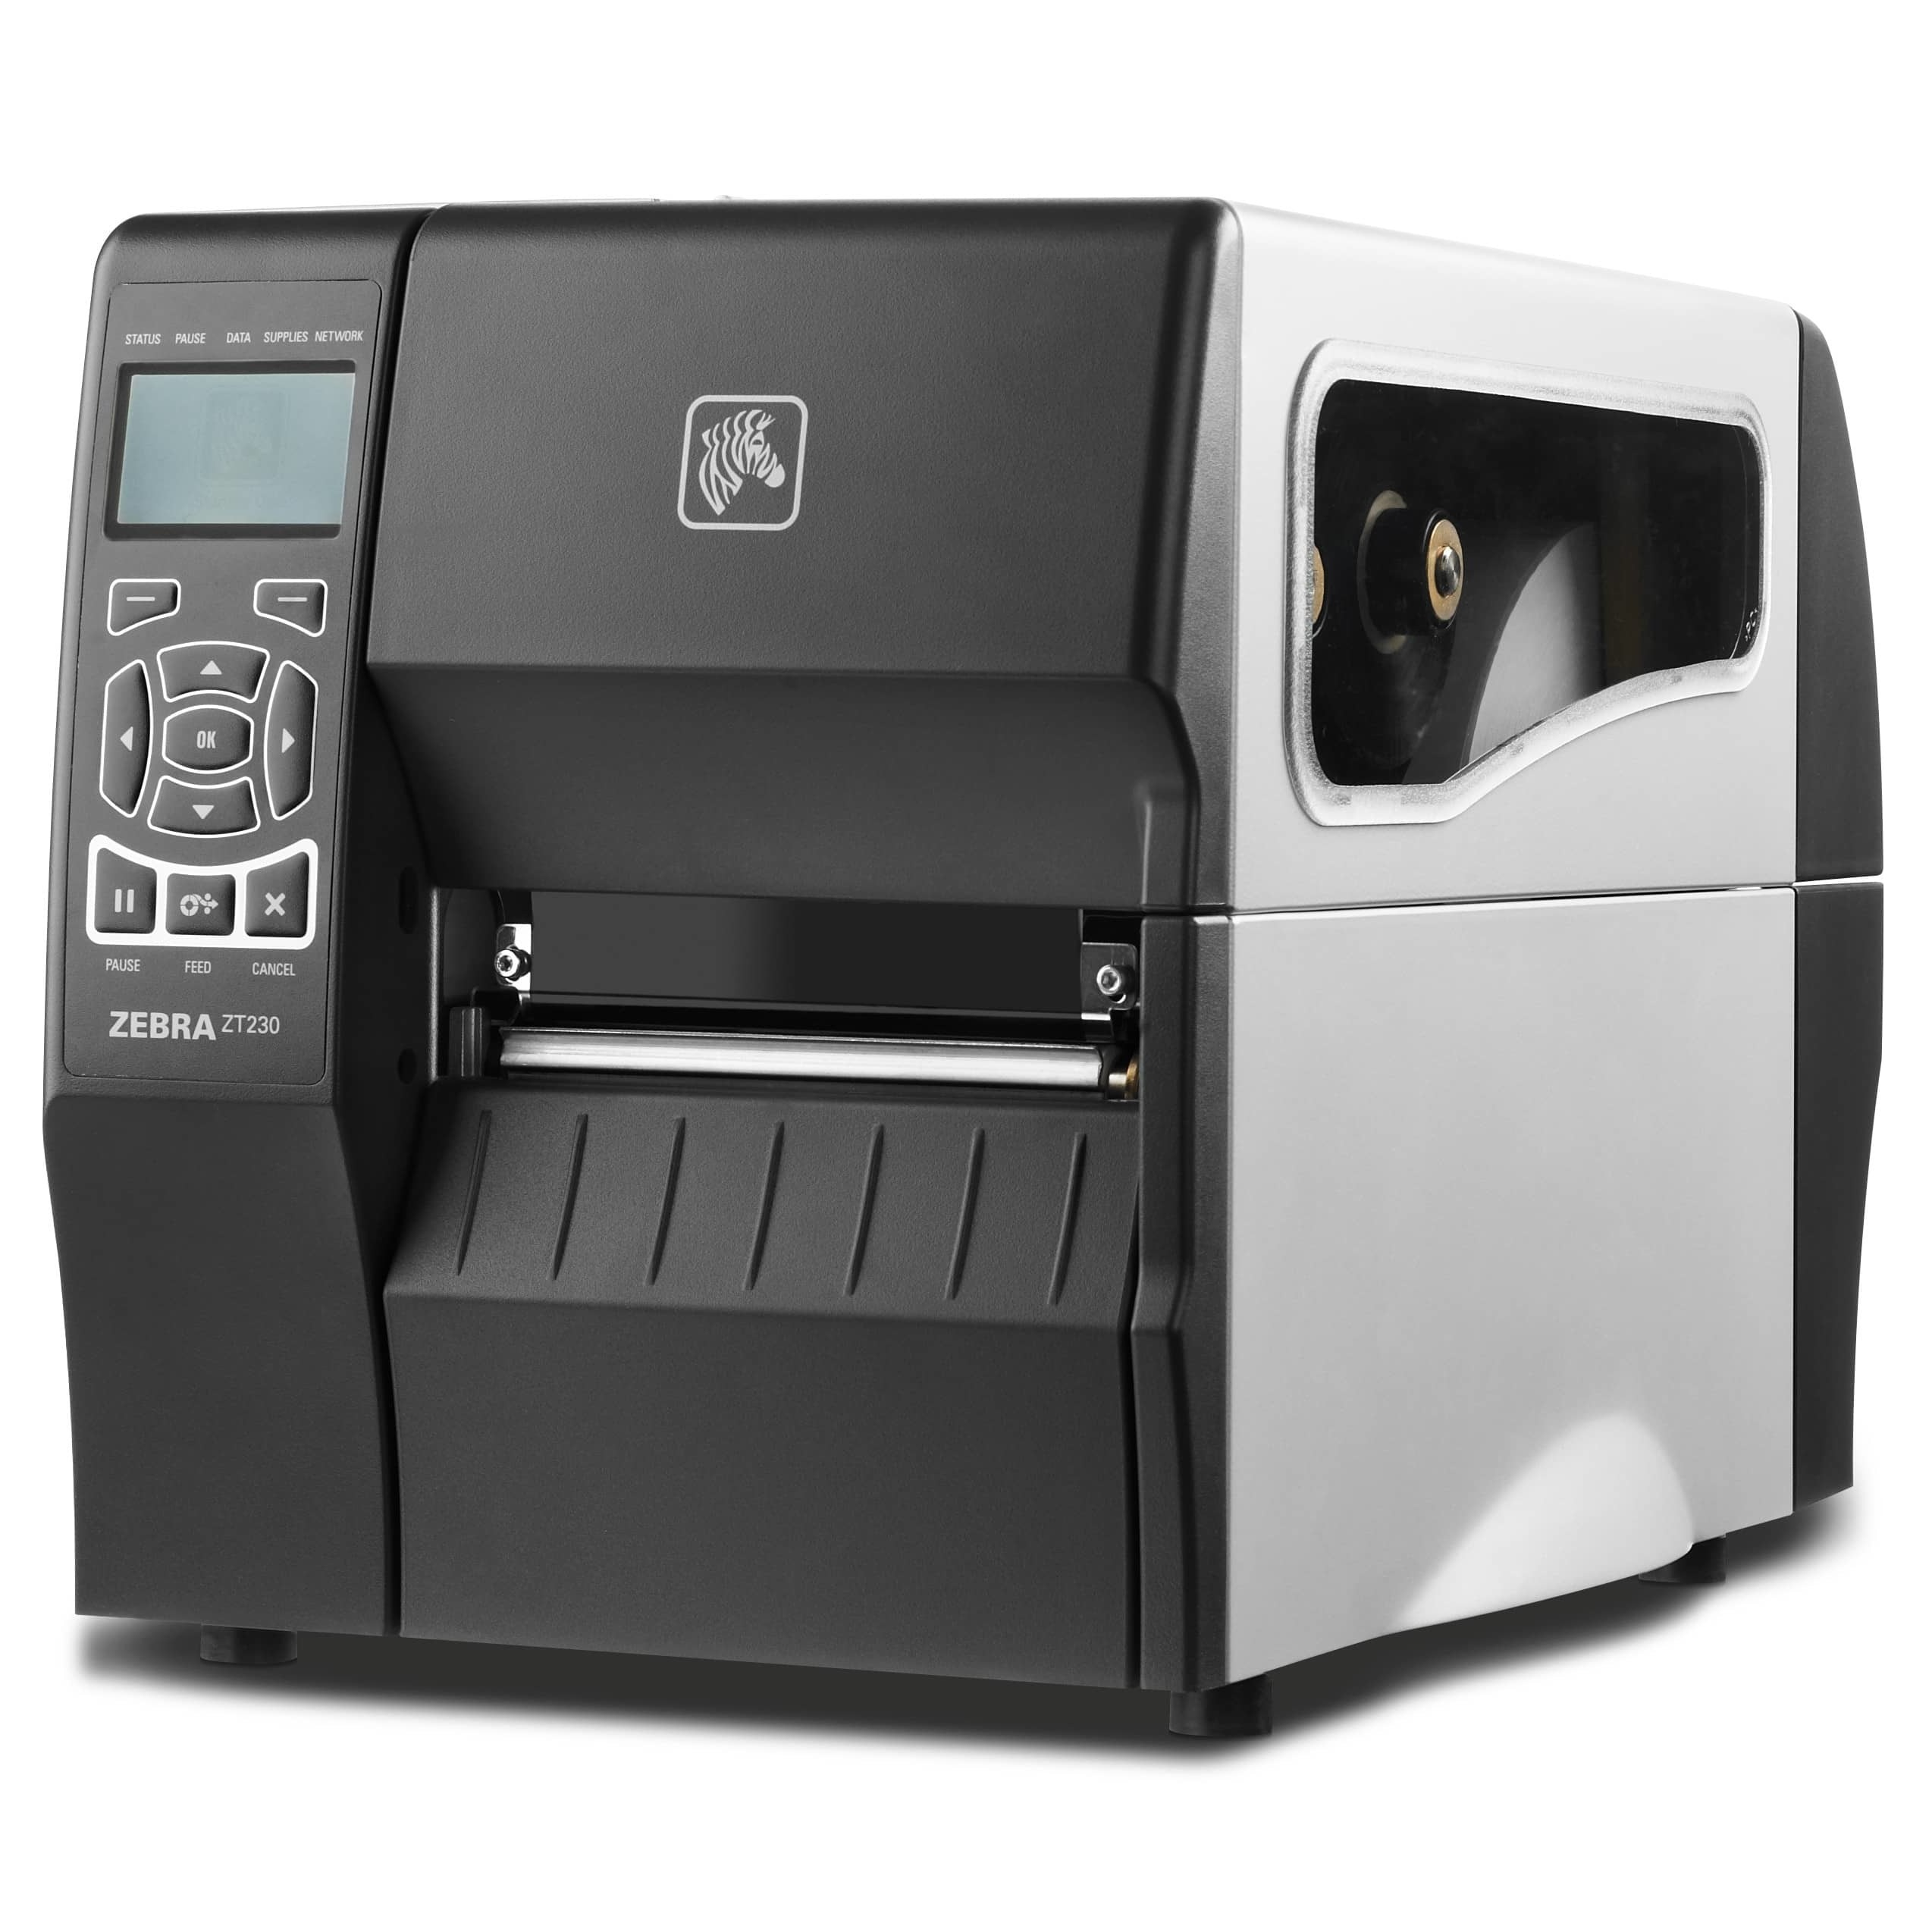 View Zebra ZT230 Midrange Label Printer with USB, Serial & Ethernet Interface